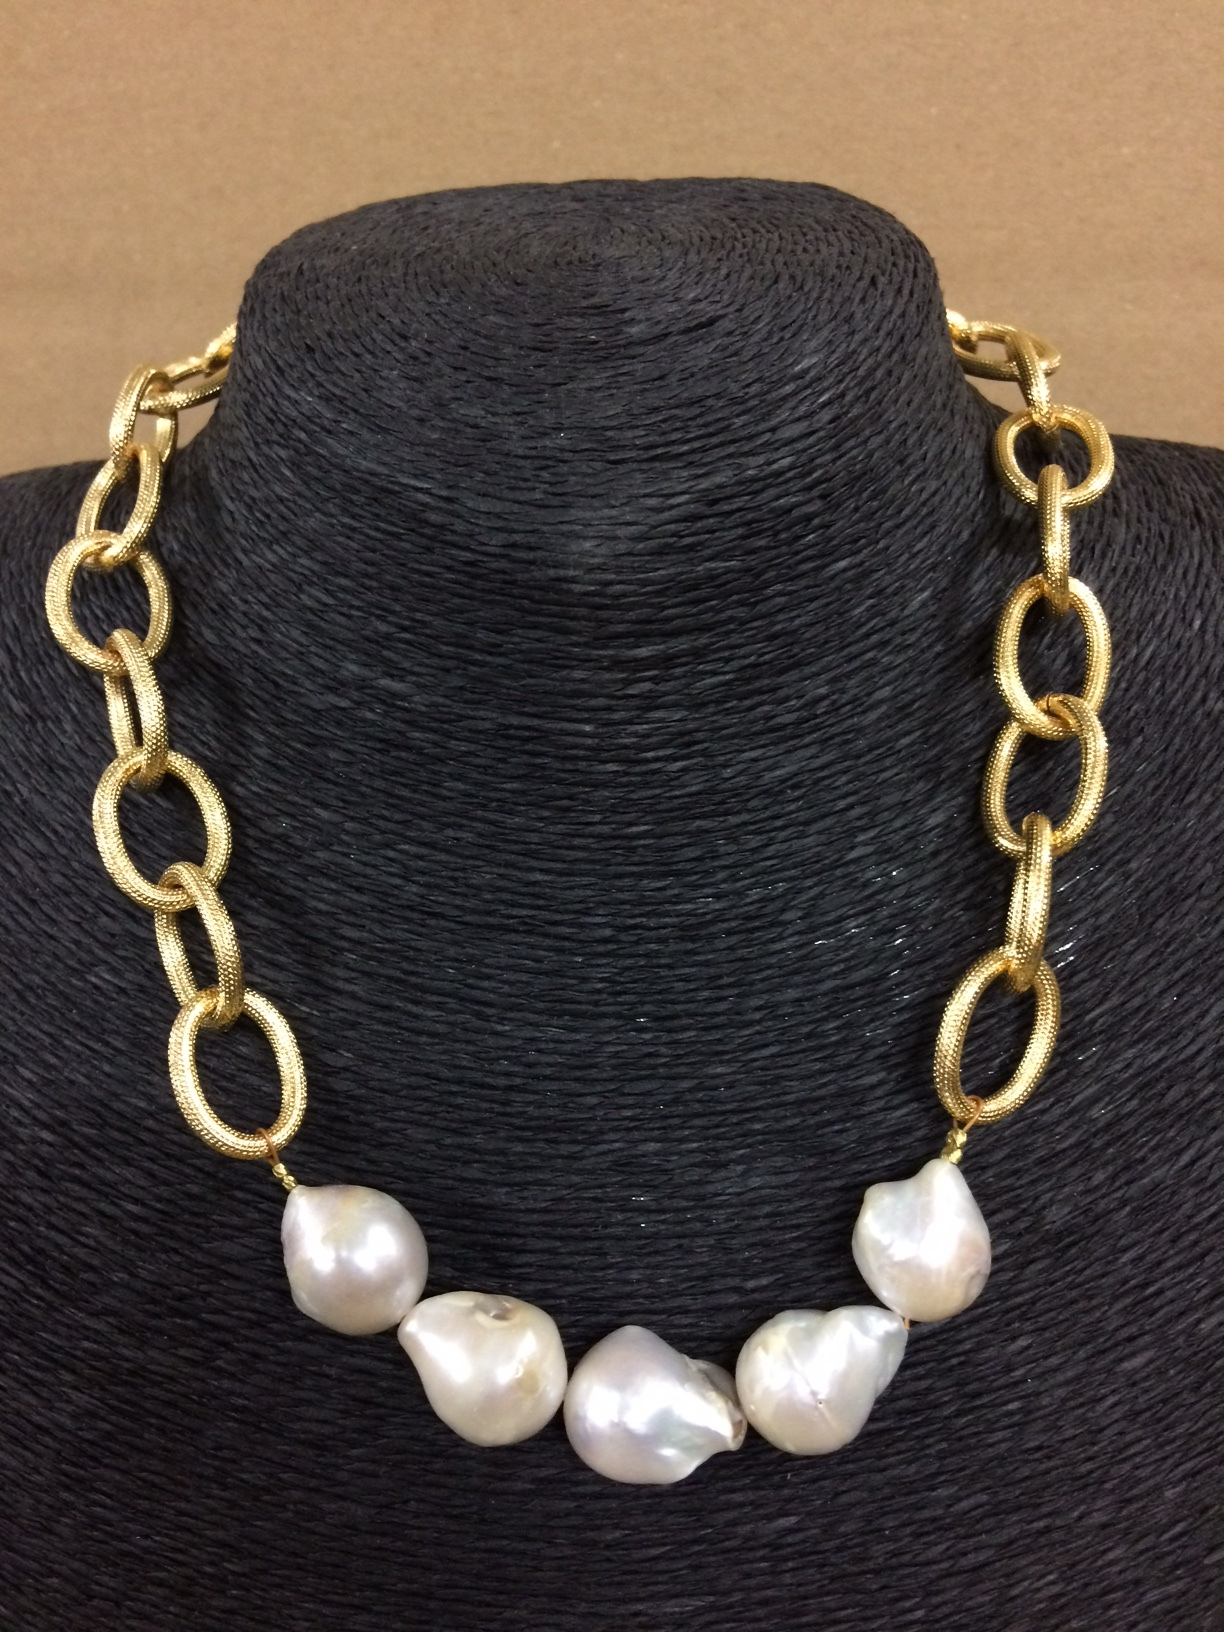 susan-shaw-necklace-pearls-and-chain